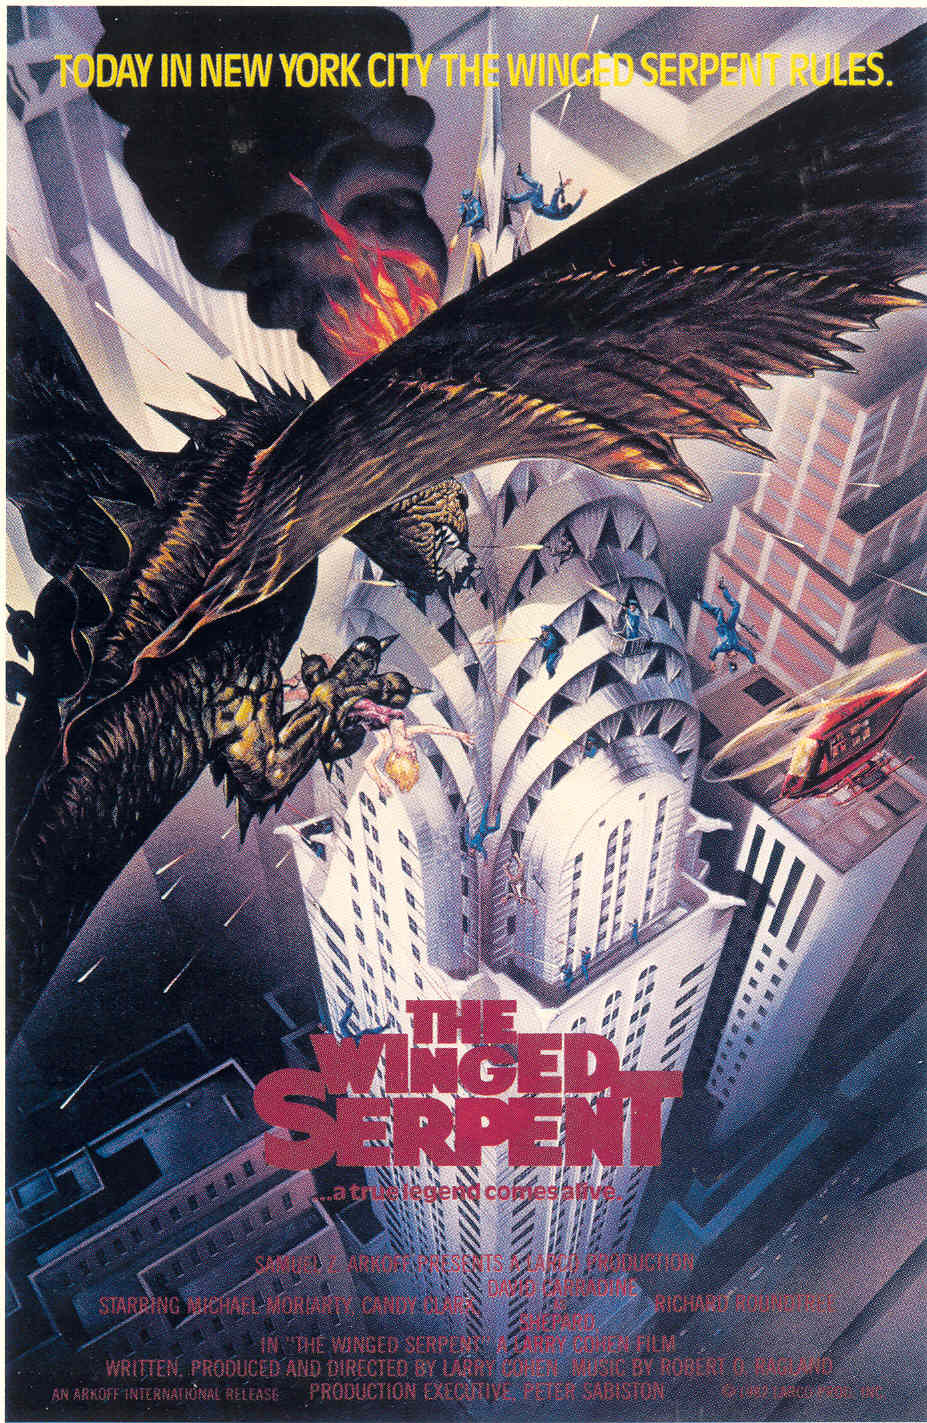 poster-the-winged-serpent-q-the-winged-s